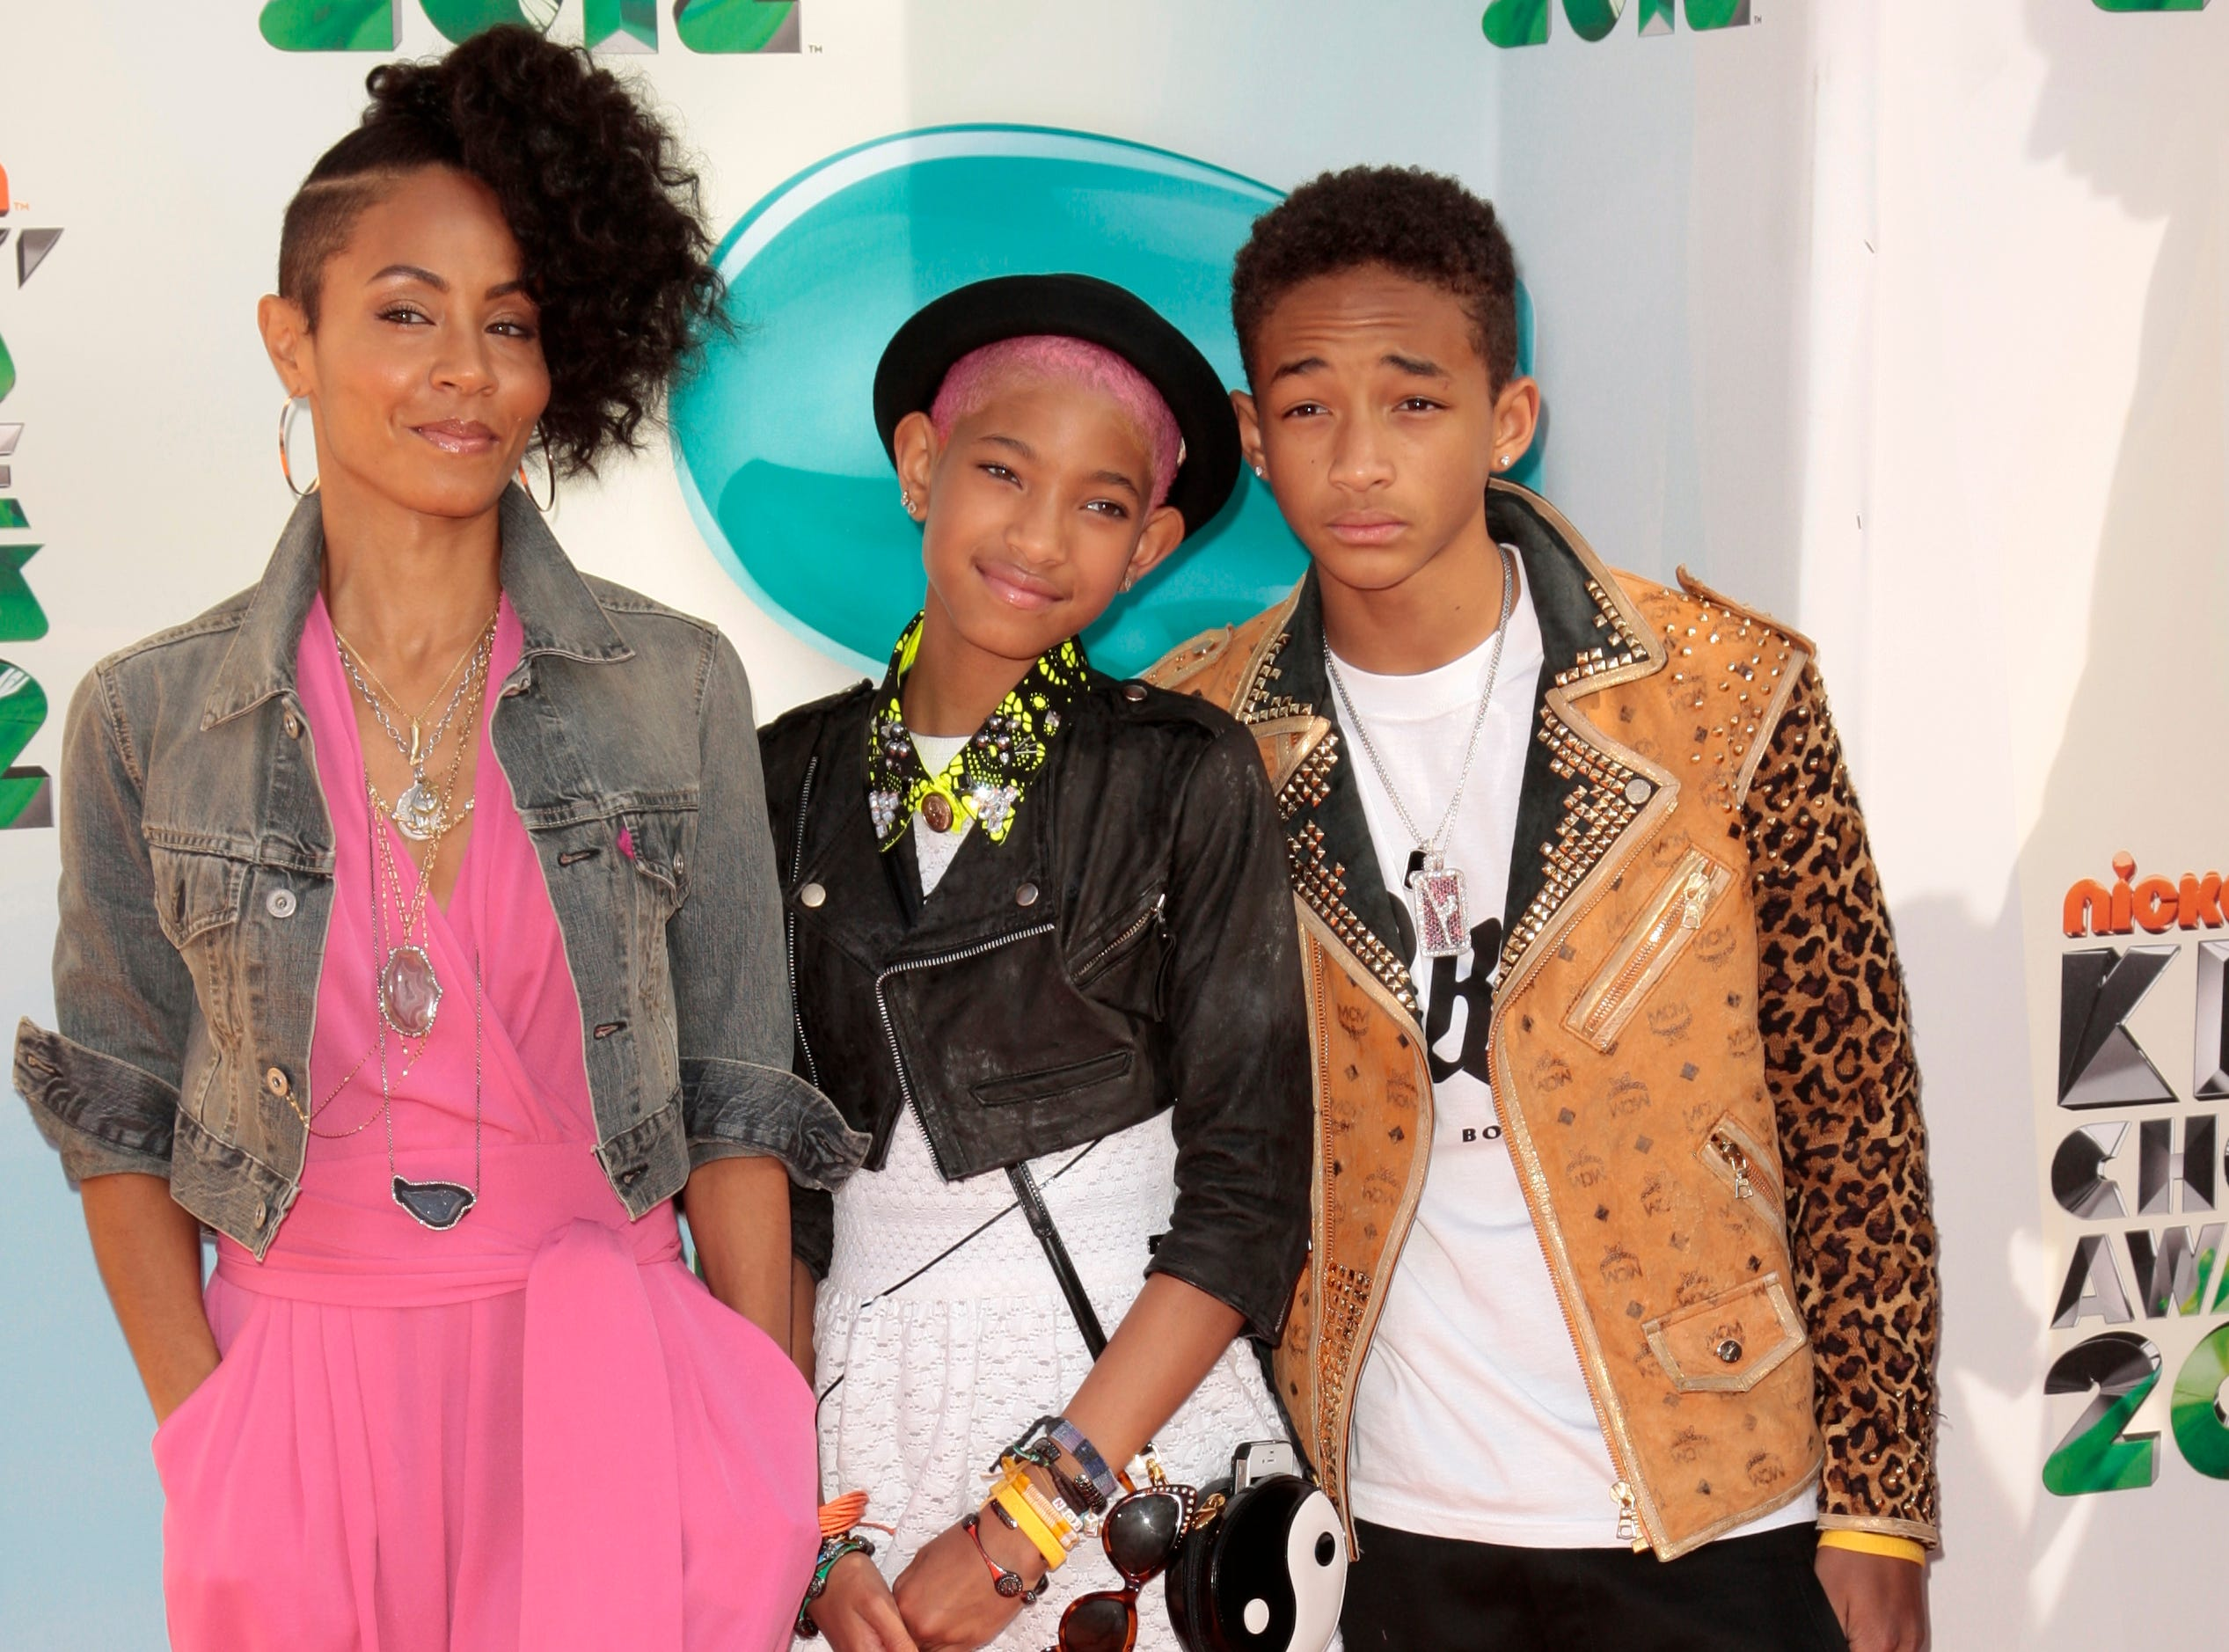 Jada Pinkett Smith, Willow Smith and Jaden Smith